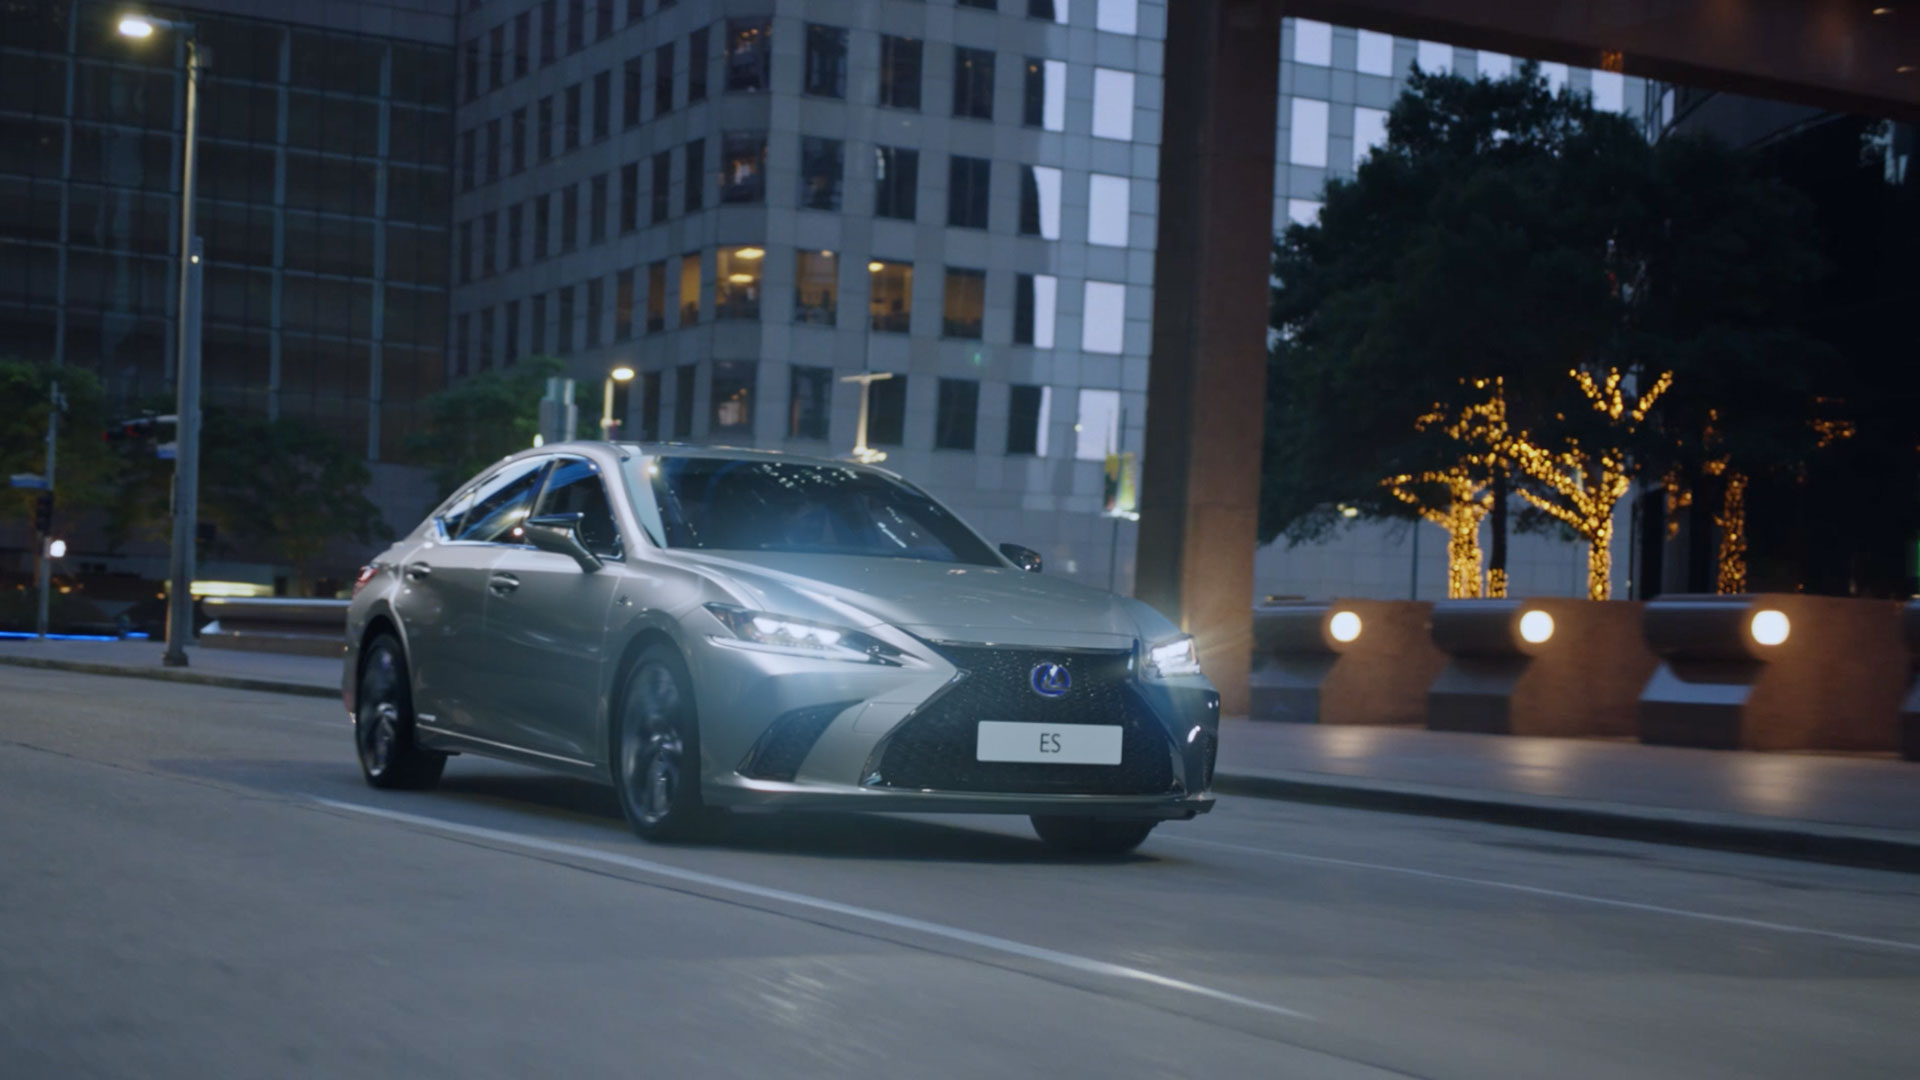 2019 lexus es hybrid gallery 012 video